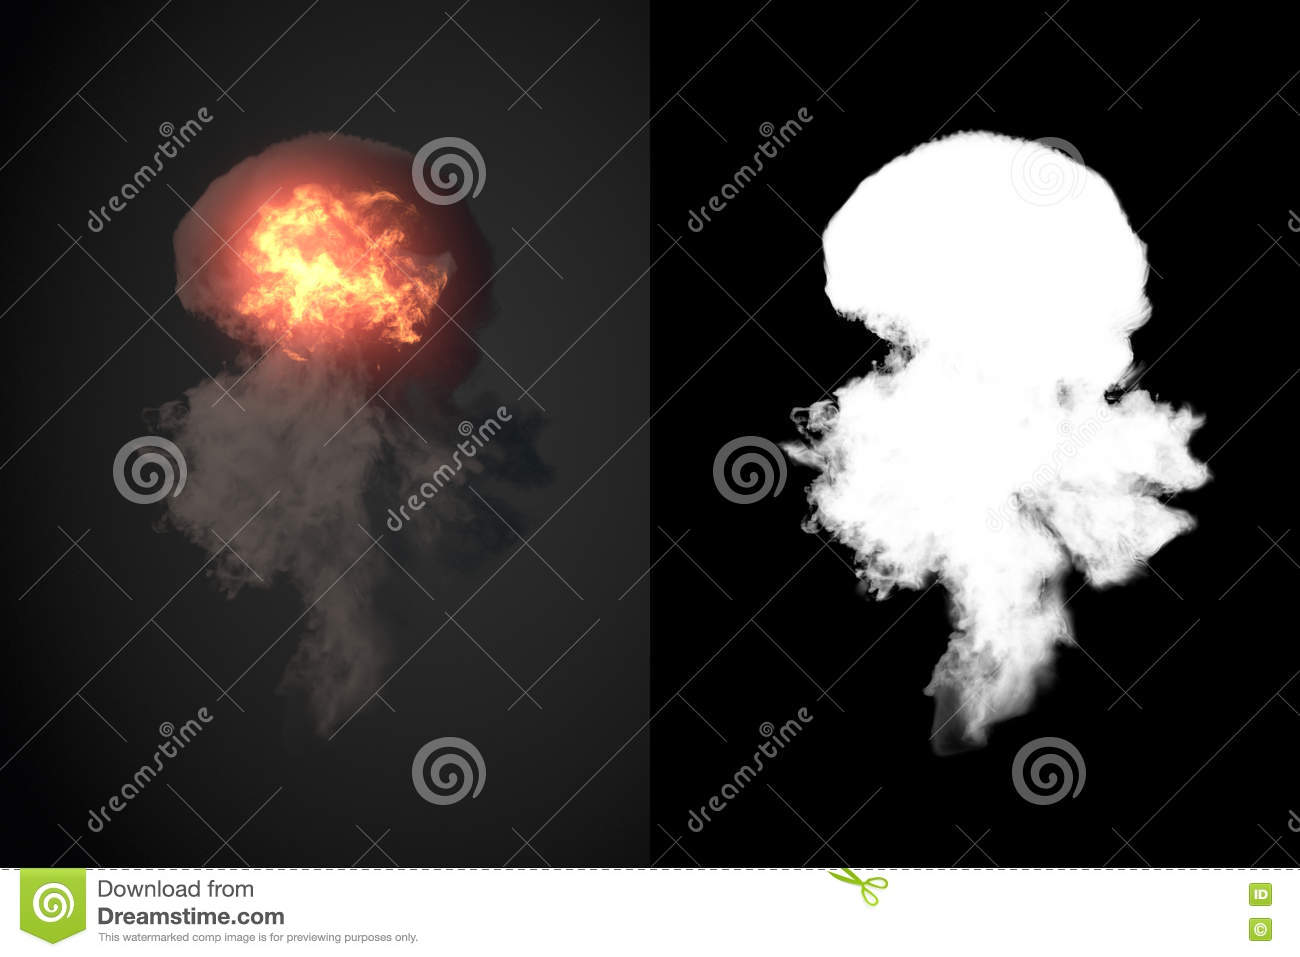 Explosion with black smoke in dark 3d rendering plus alpha channel